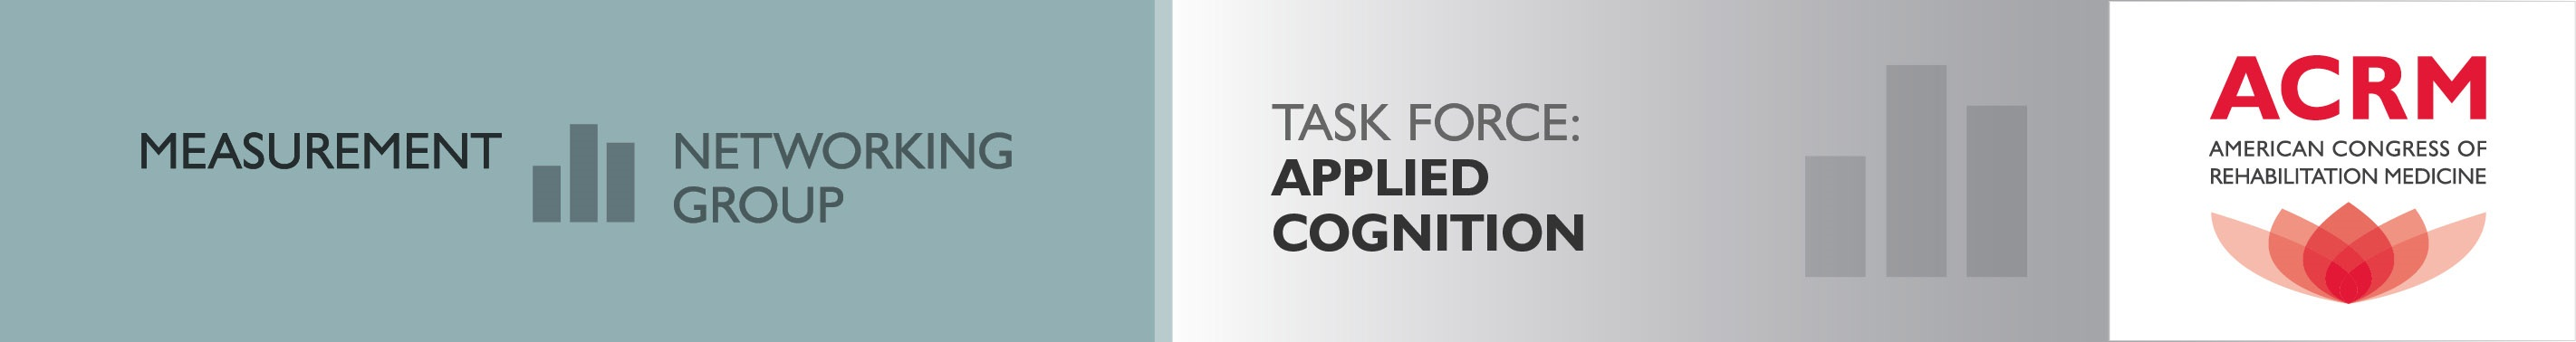 ACRM Measurement Networking Group Applied Cognition Task Force header